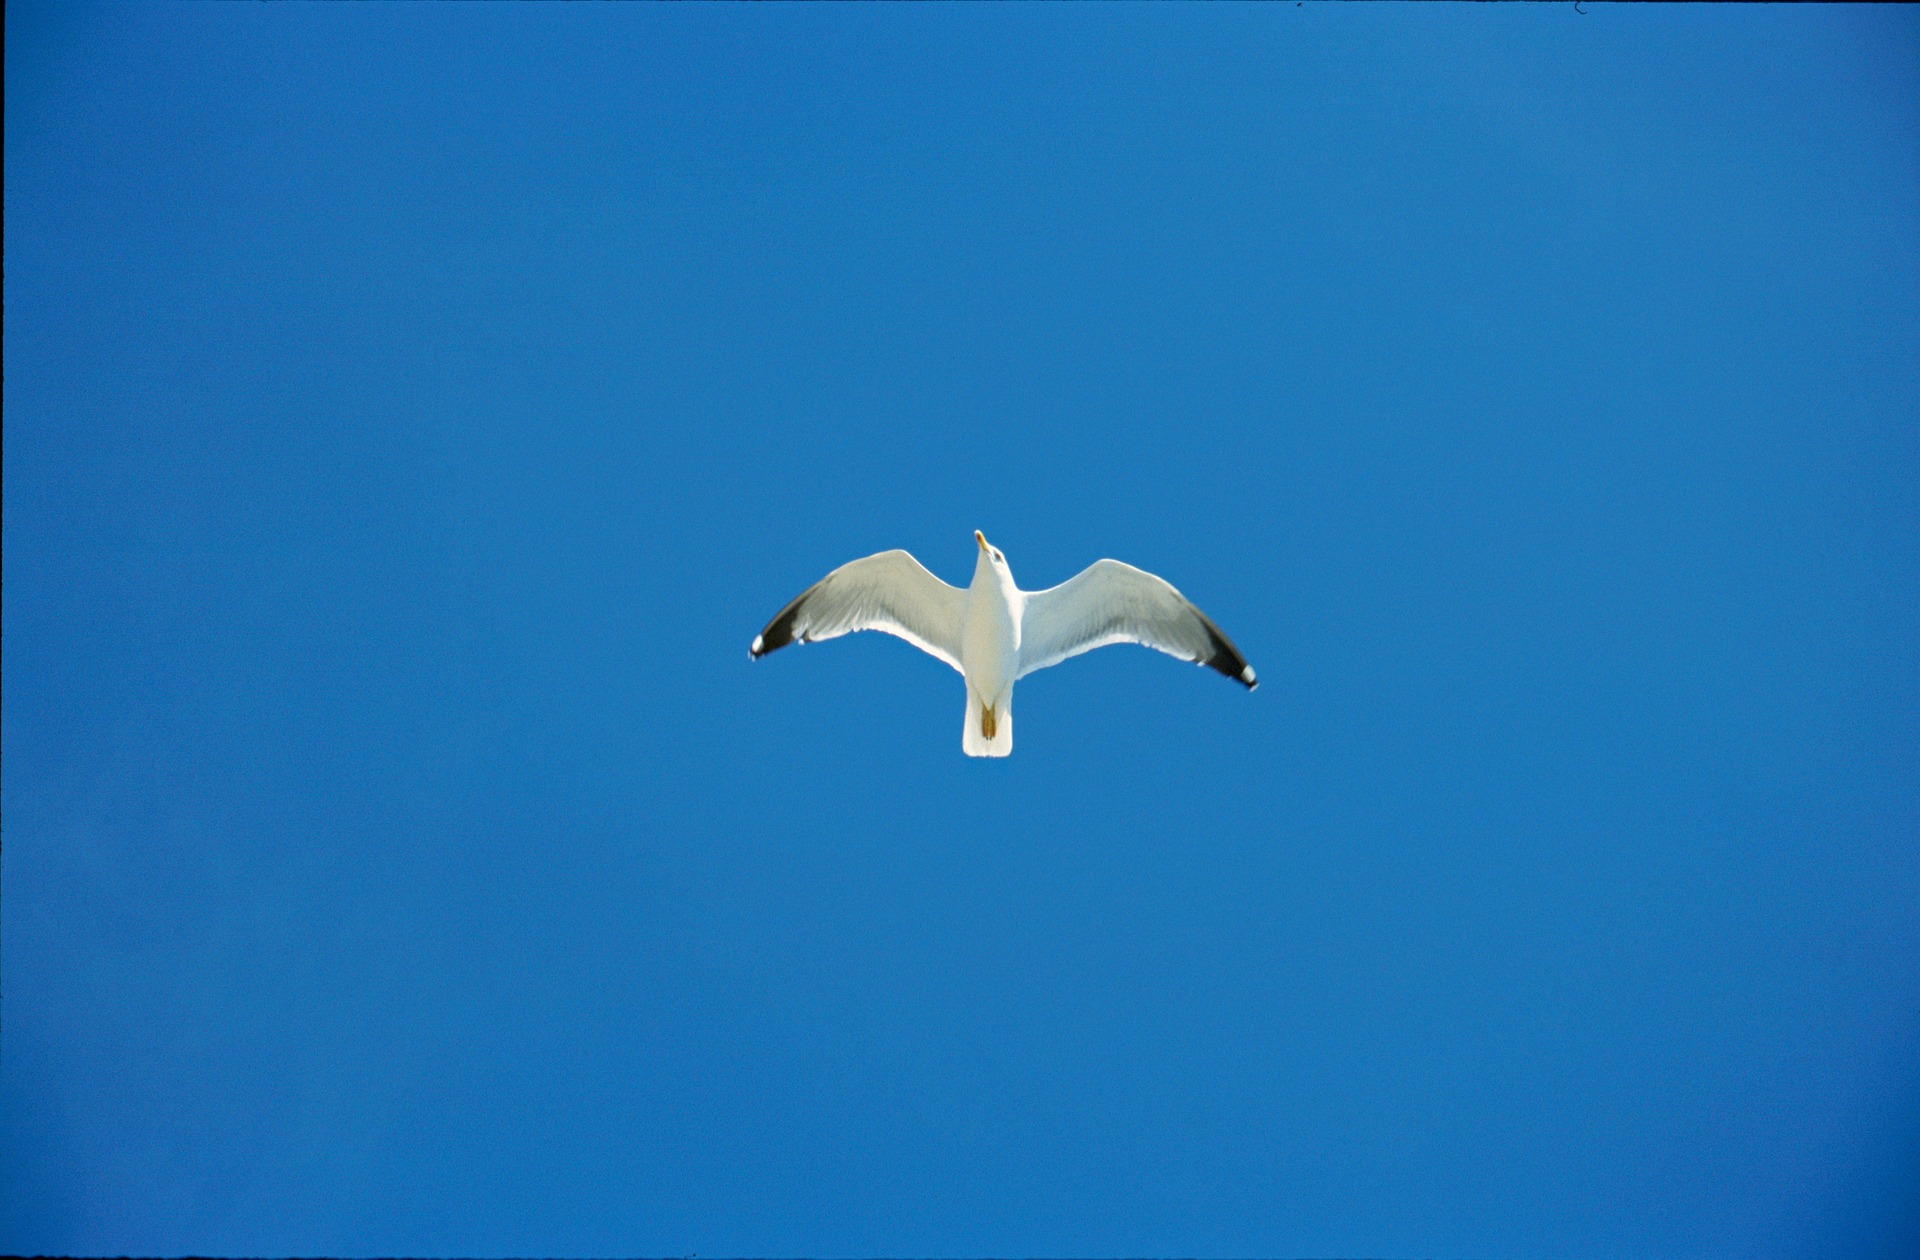 Jonathan Livingston Seagull Quotes Quotesgram